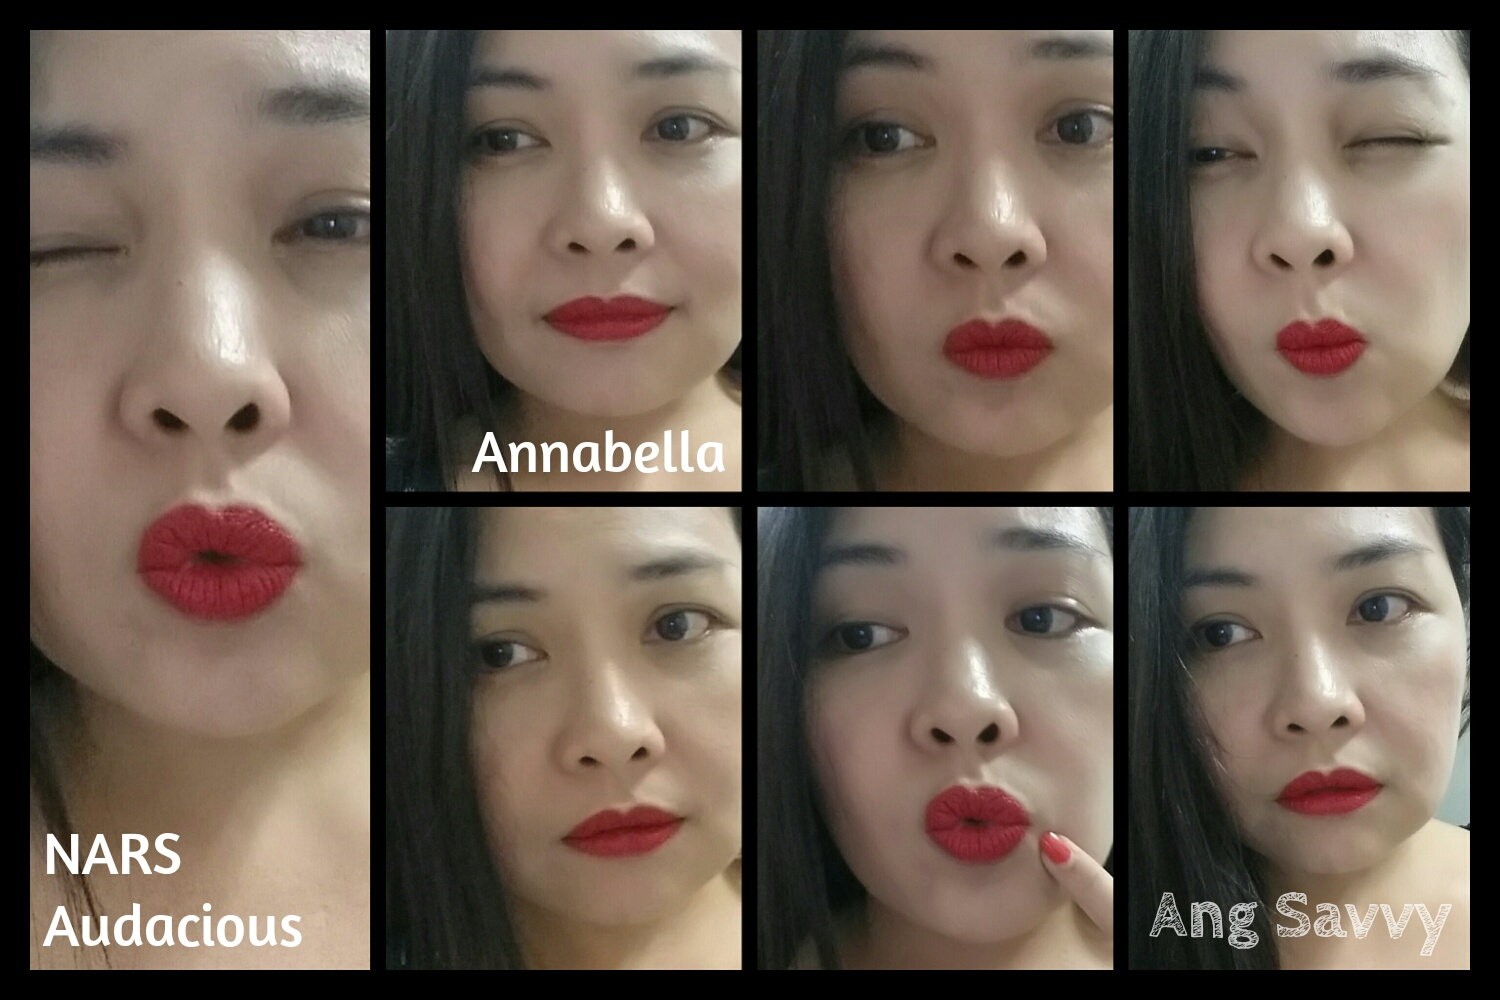 Swatches for NARS Audacious Lipstick in Anabella